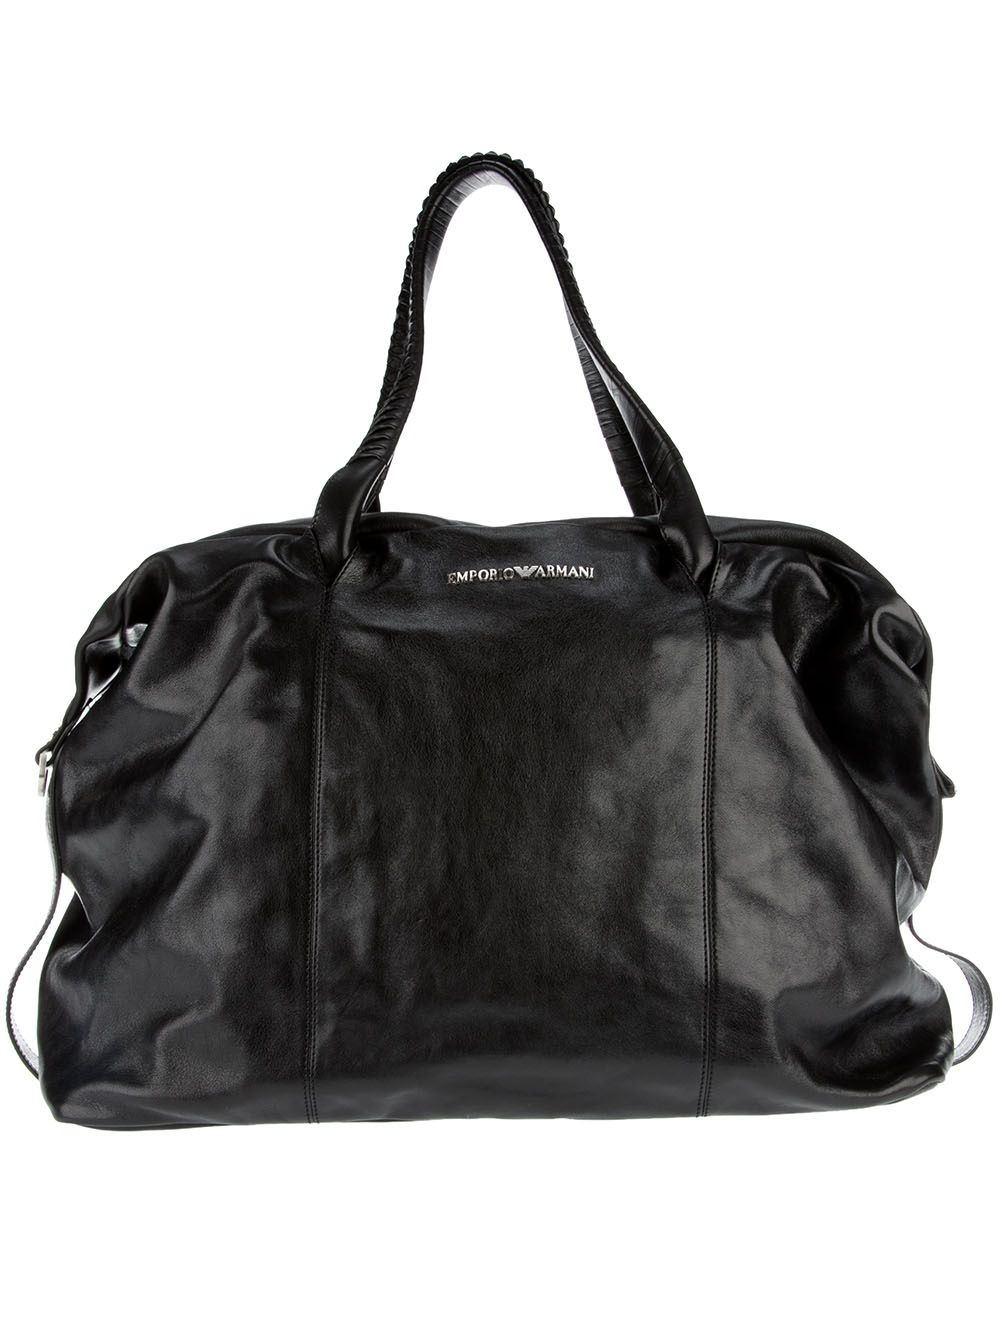 Emporio armani Weekend Bag in Black for Men  7a3b8a3c3248d